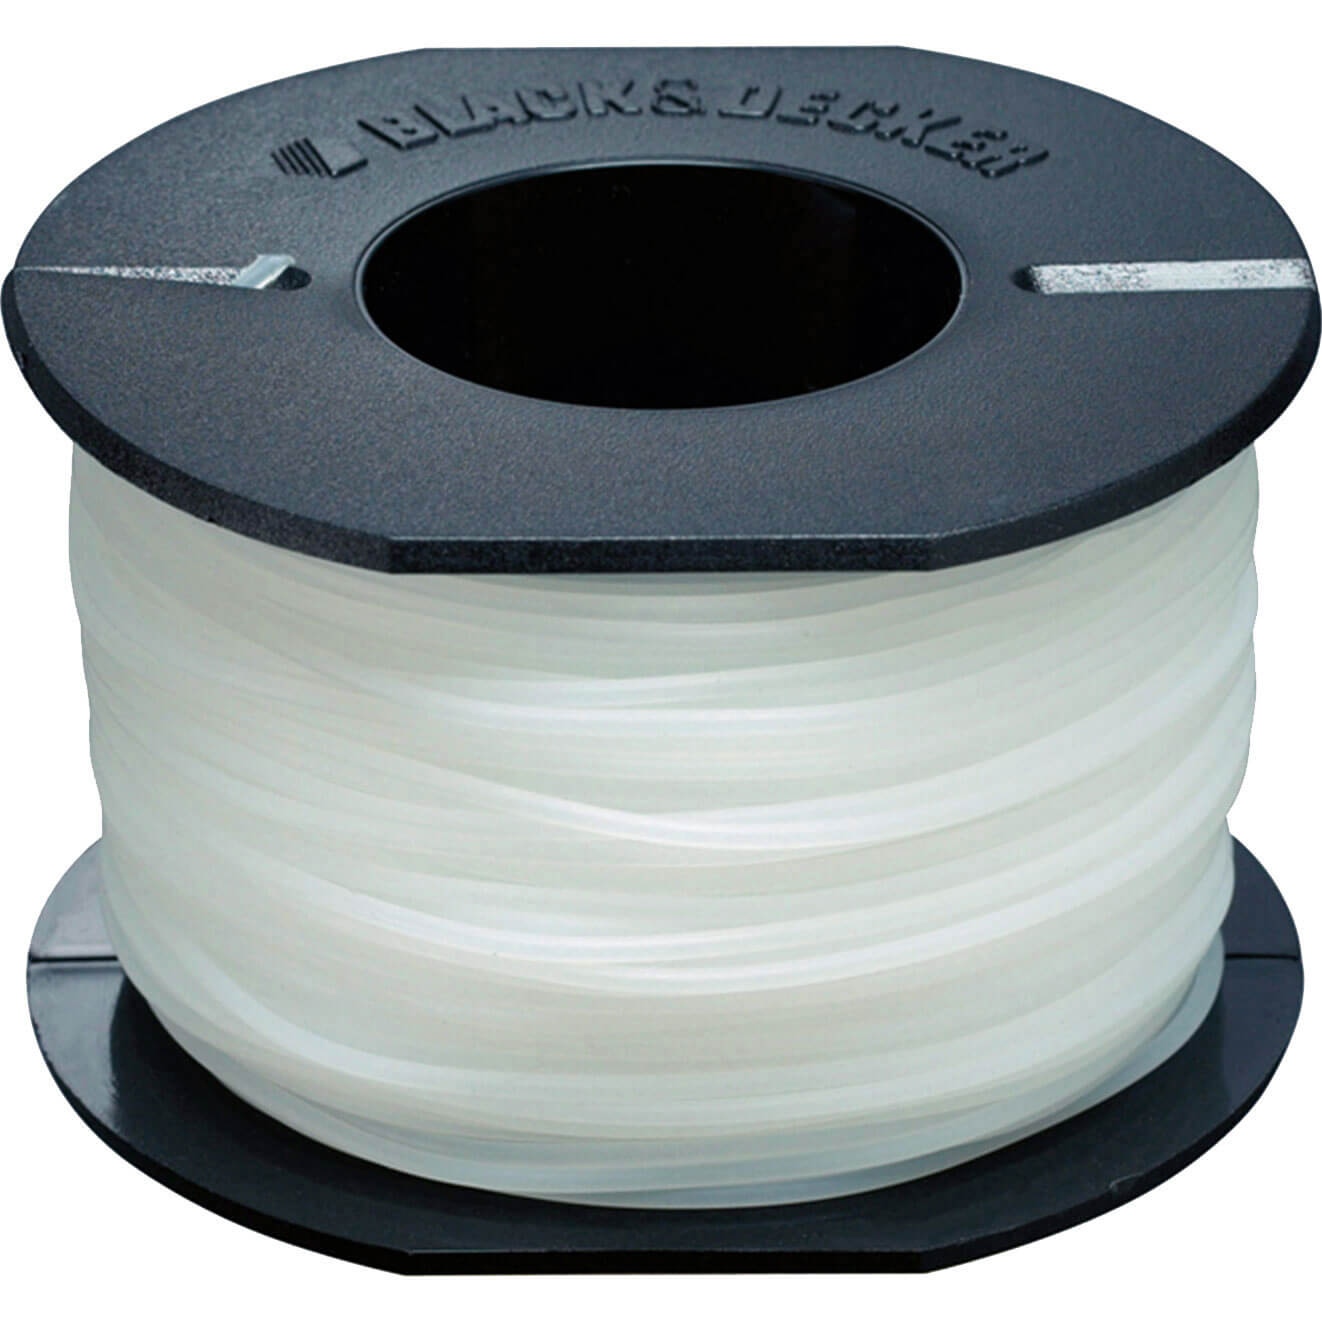 Black & Decker A6171 Replacement 1.5mm x 40 Metre White Reflex Line for Grass Trimmers